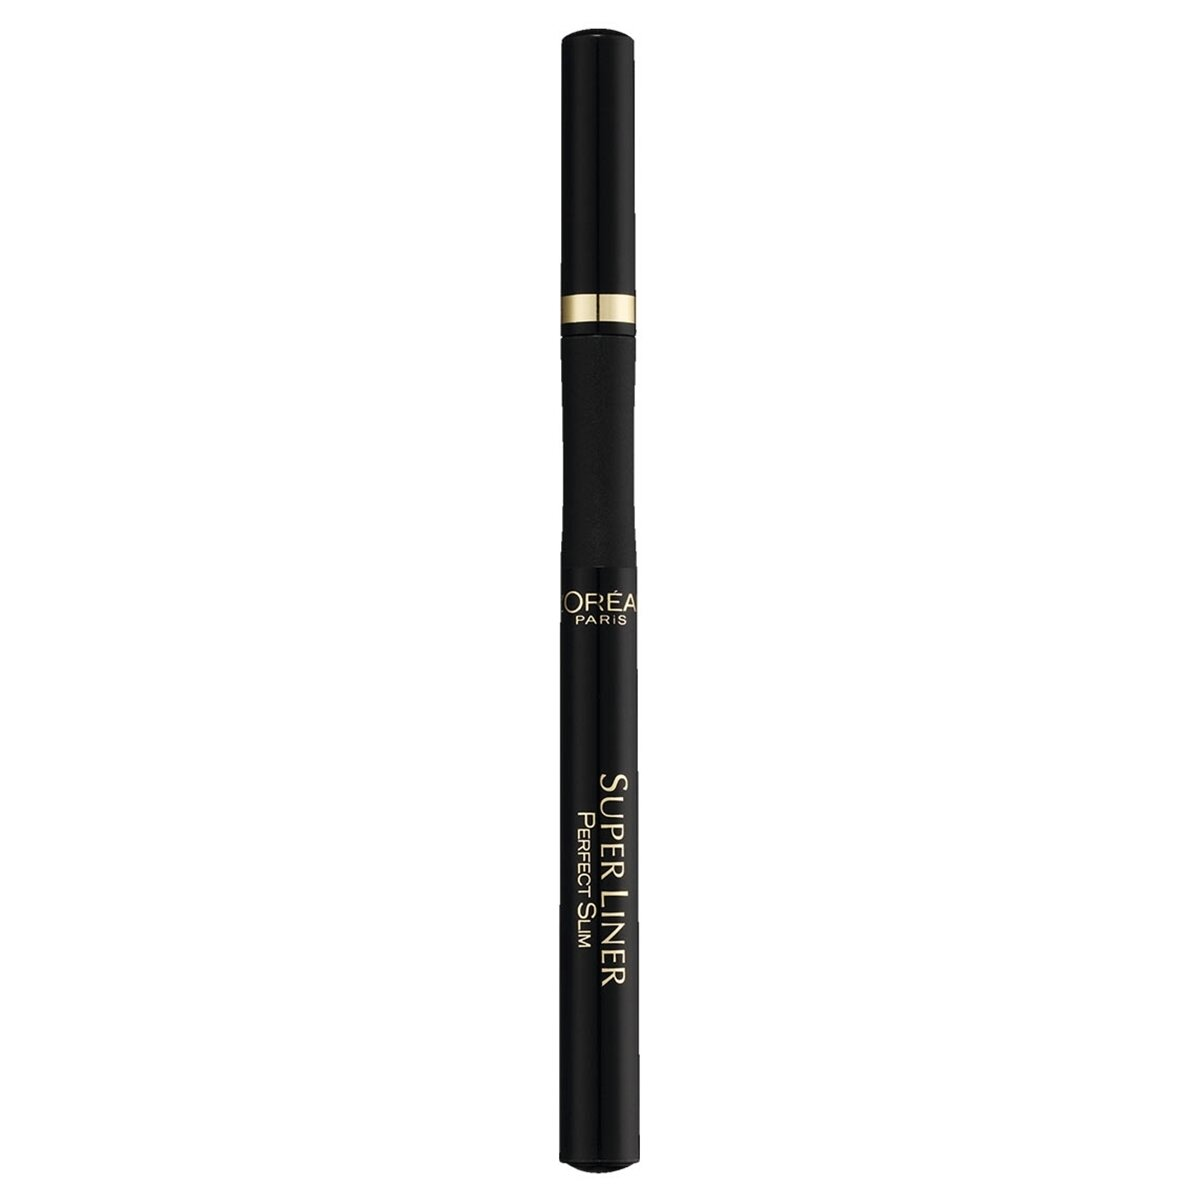 Superliner Perfect Slim Eyeliner